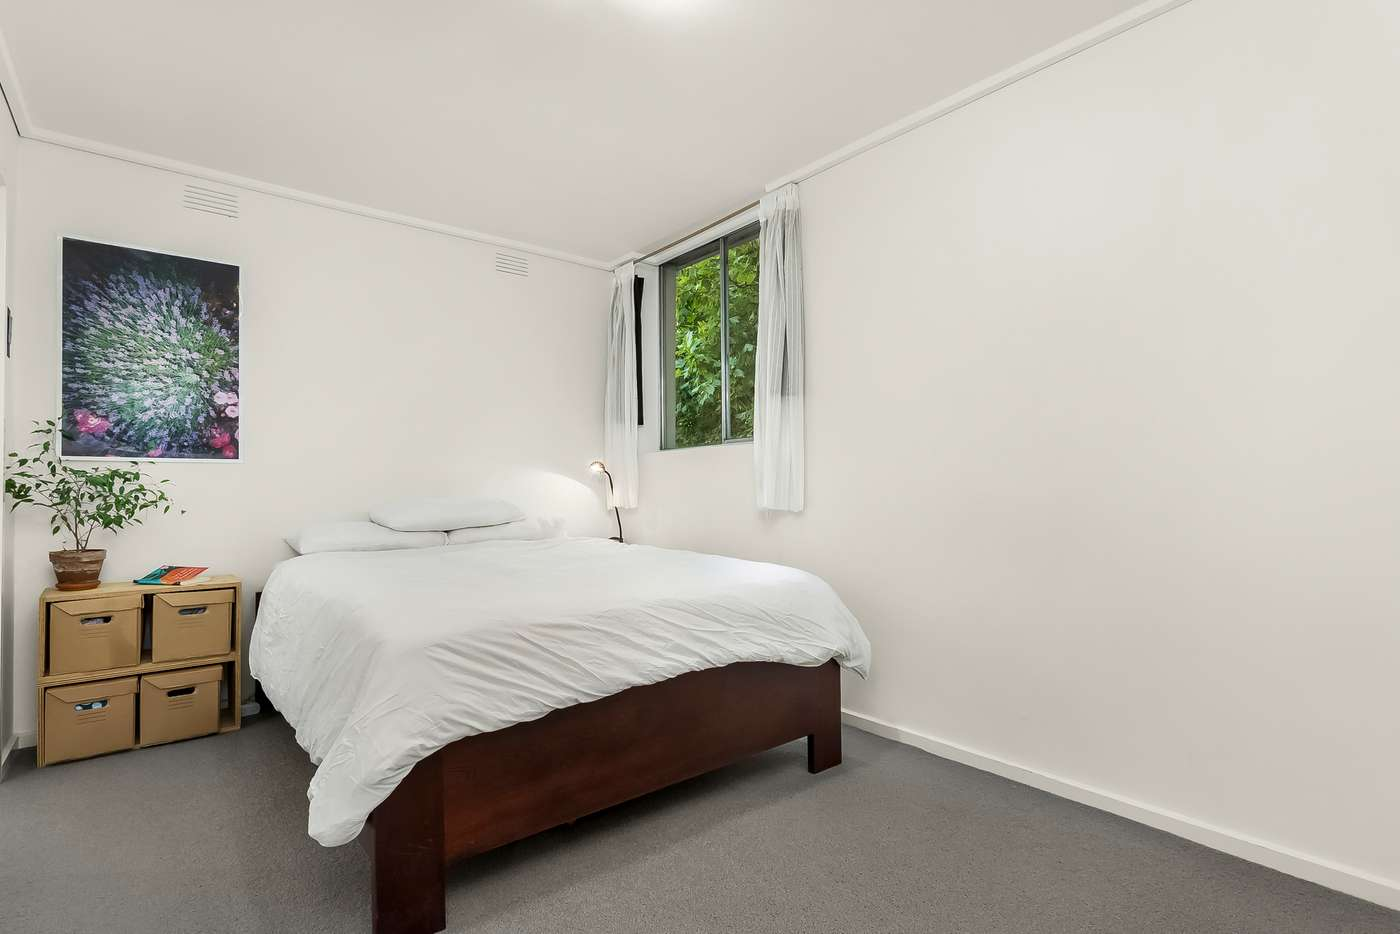 Fifth view of Homely apartment listing, 16/60 Oshanassy Street, North Melbourne VIC 3051